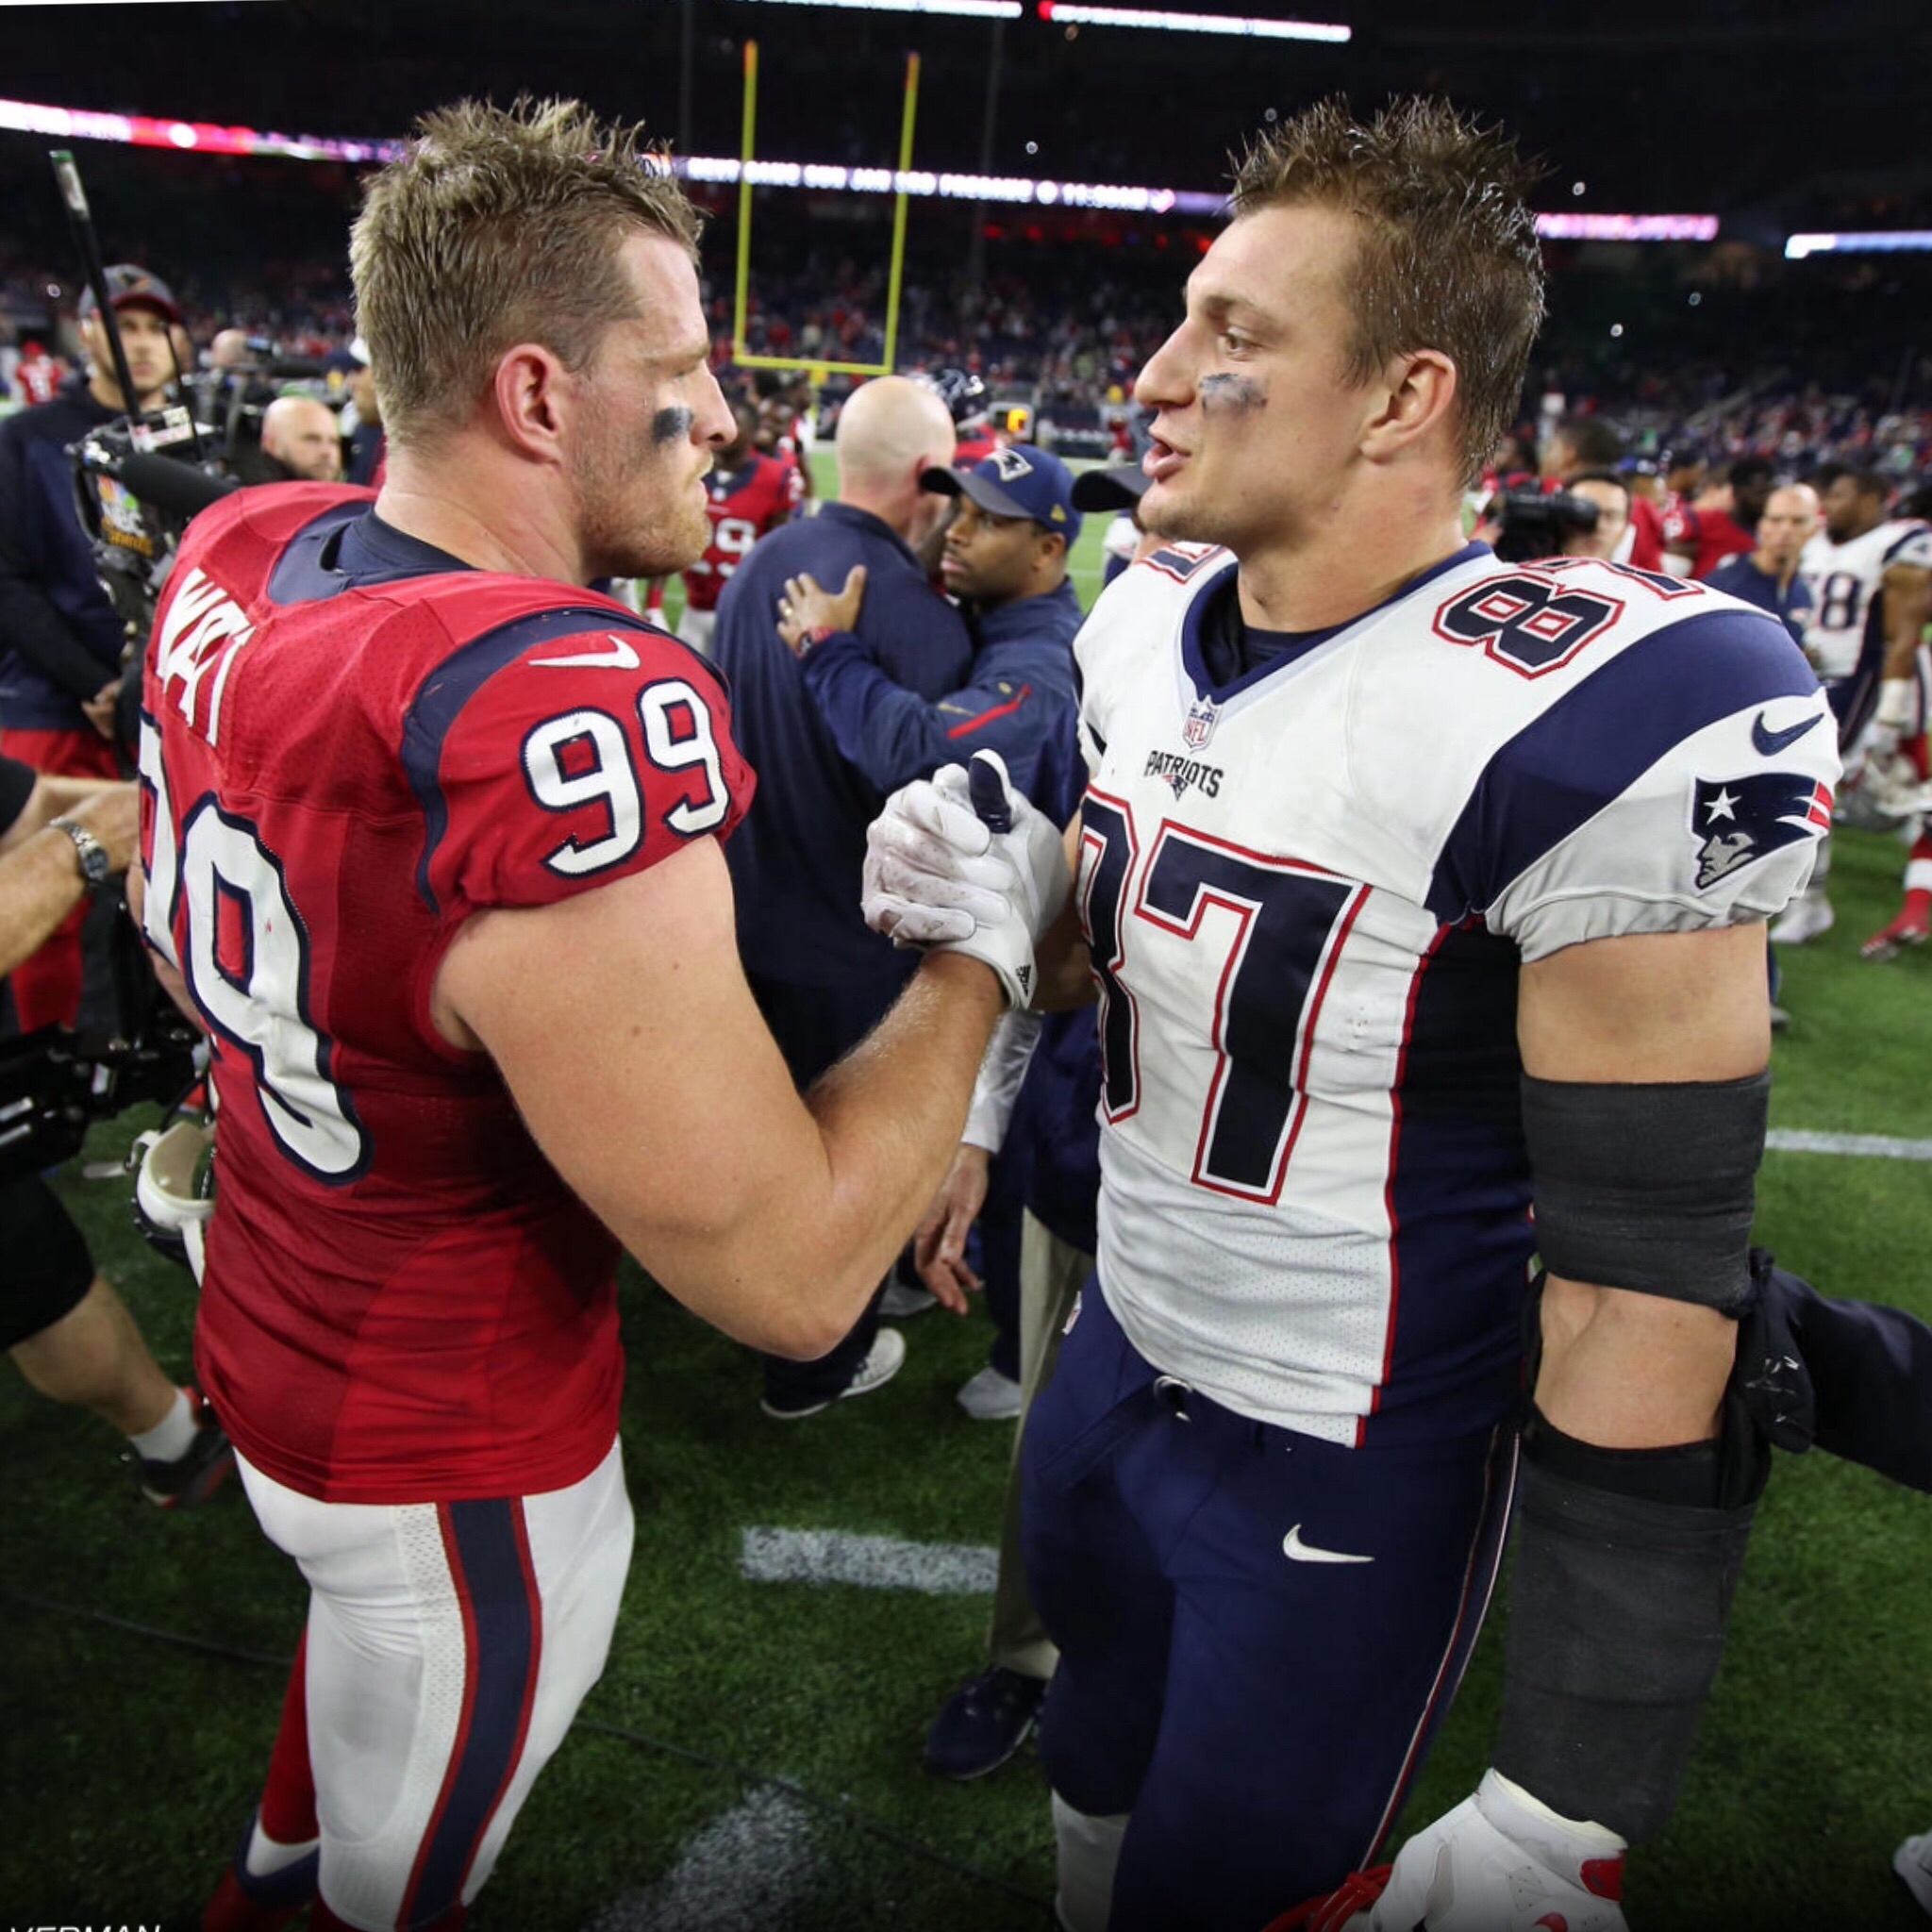 Pin By Laurie Ann On Rob Gronk Gronkowski Nfl Fantasy Football New England Patriots Gronk